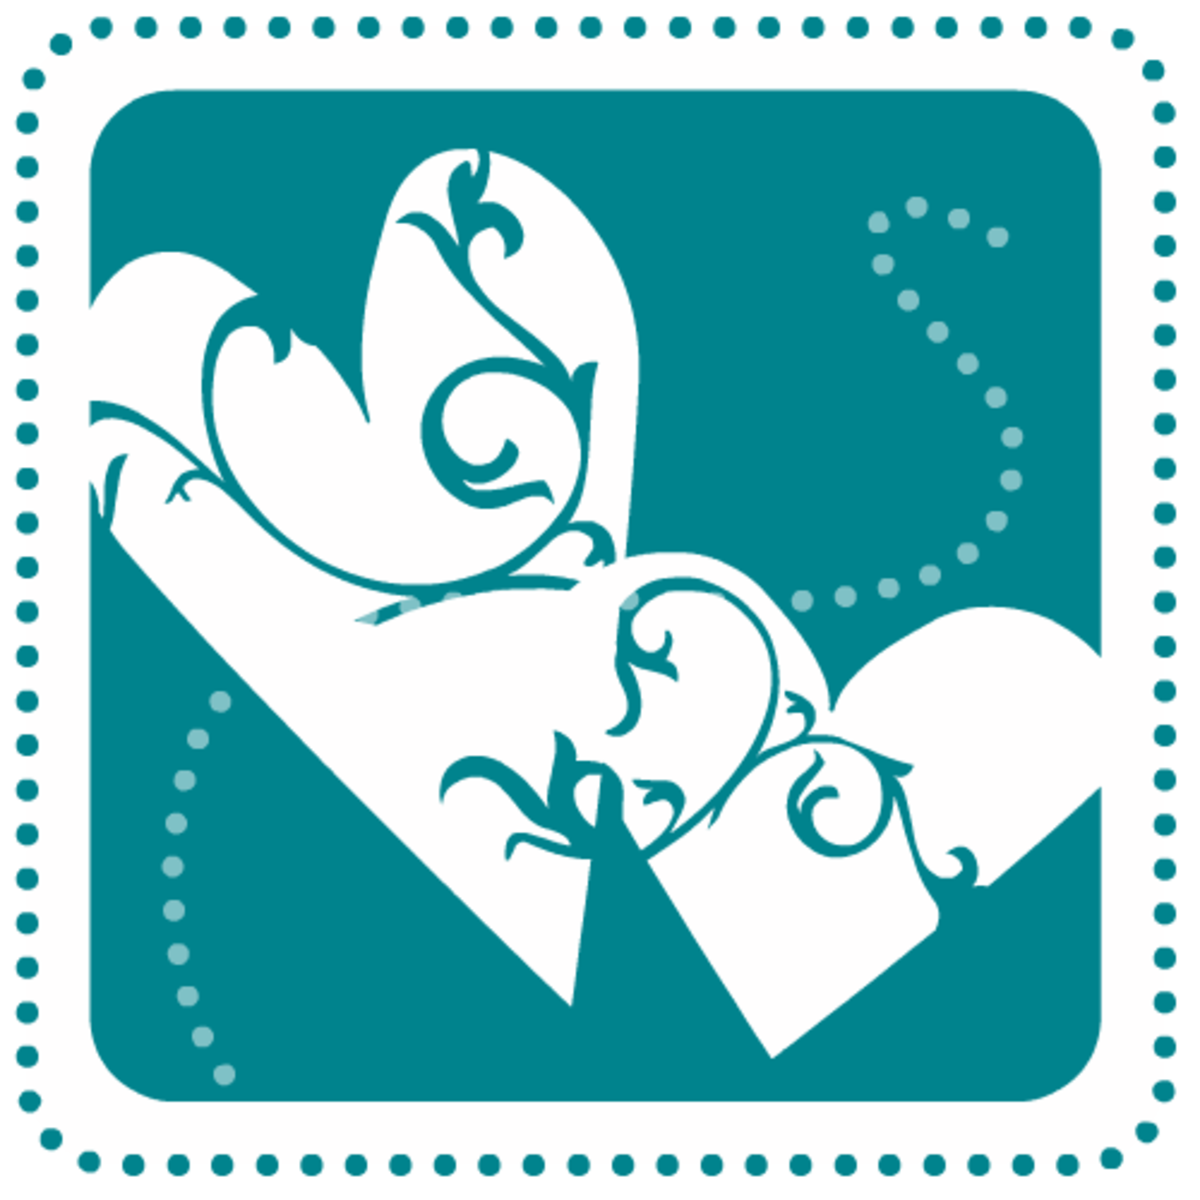 Valentine clip art: Two teal hearts with swirls and dots